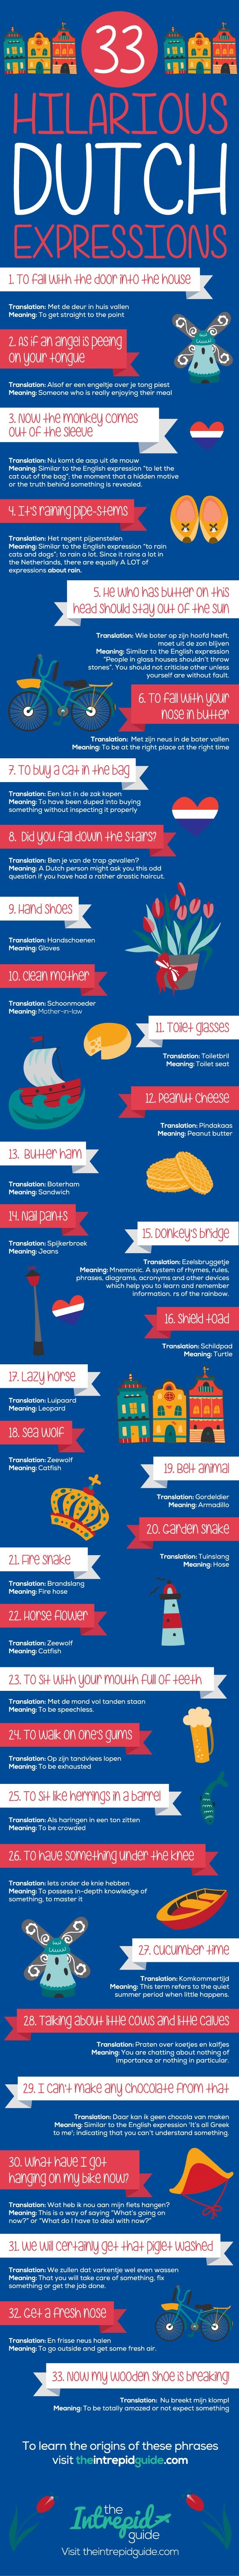 33 Eye-Wateringly Funny Dutch Phrases and Idioms